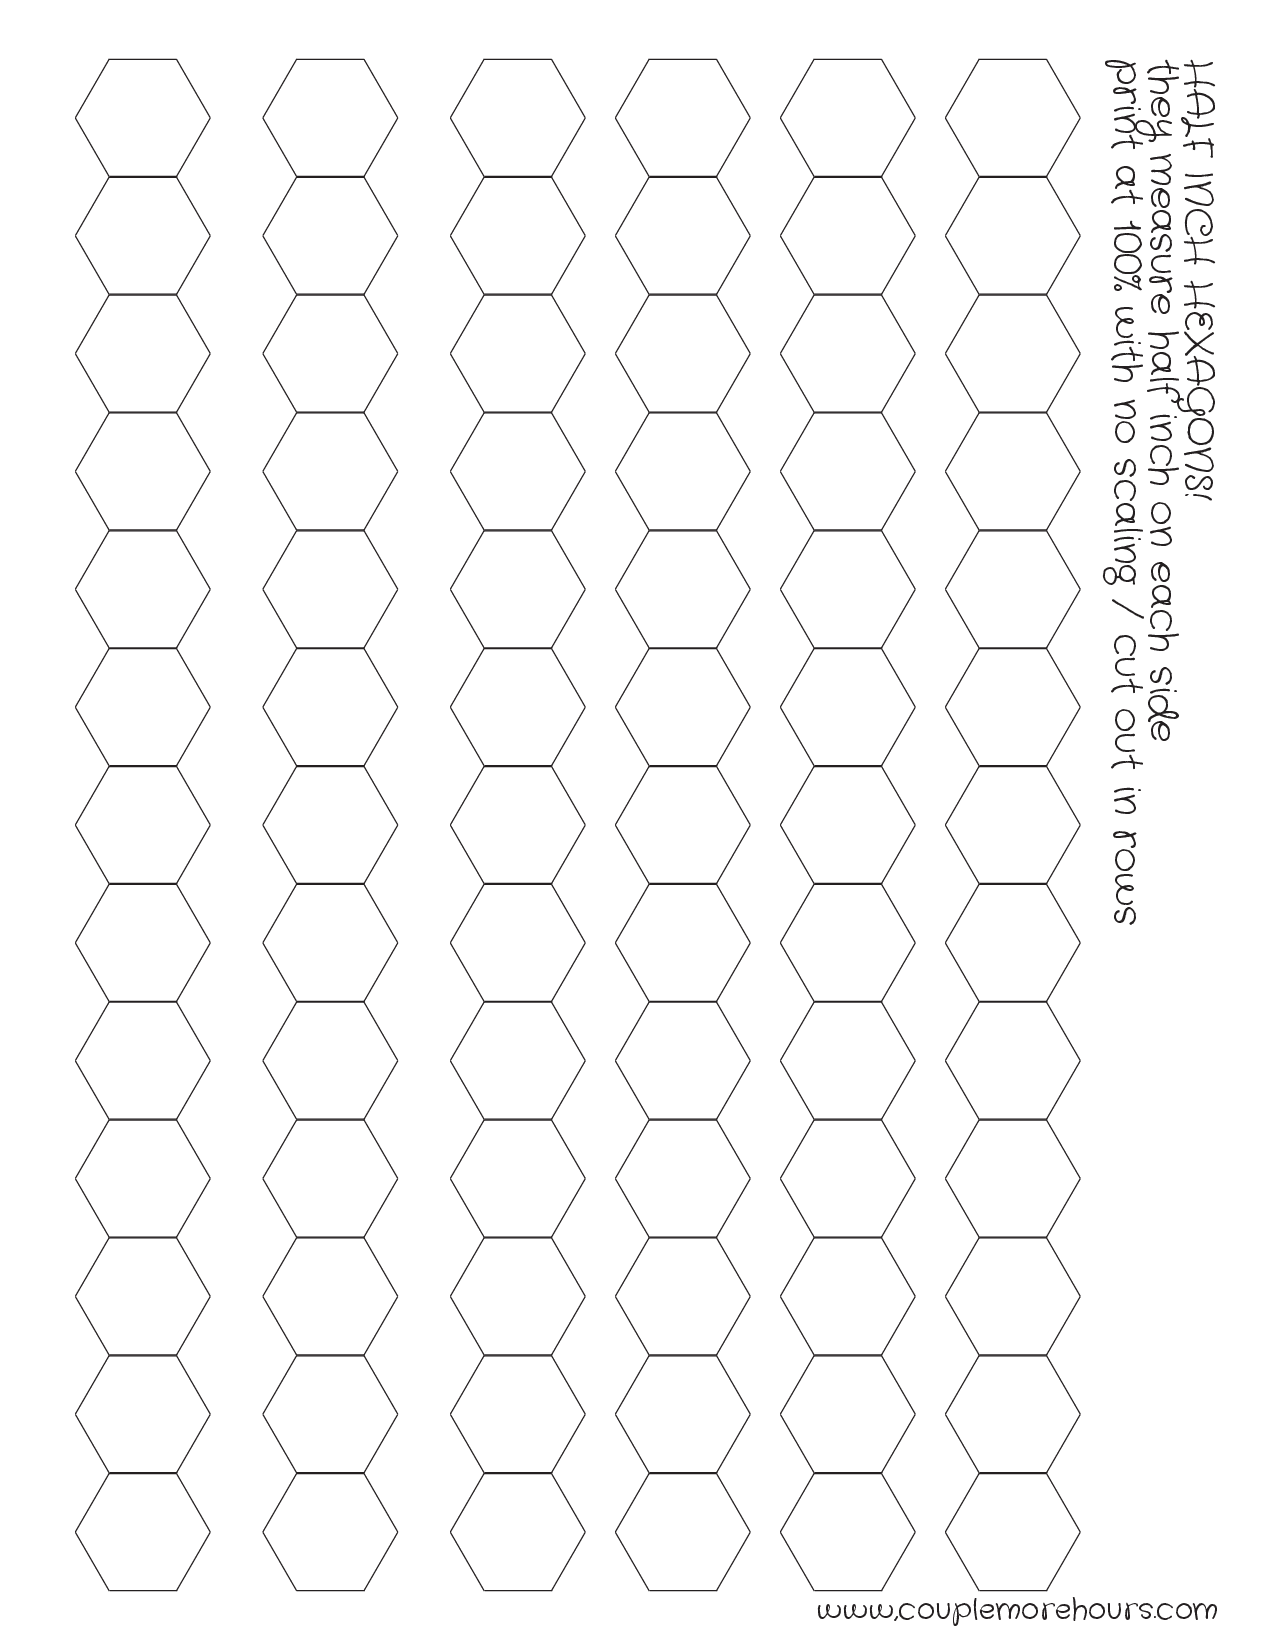 Comfortable 1 Week Calendar Template Tiny 1099 Excel Template Rectangular 12 Month Budget Template 14 Year Old Resumes Young 17 Year Old Resume Sample Green1st Job Resume Samples Half Inch Hexies Printable | Flex Frame Sewing | Pinterest ..